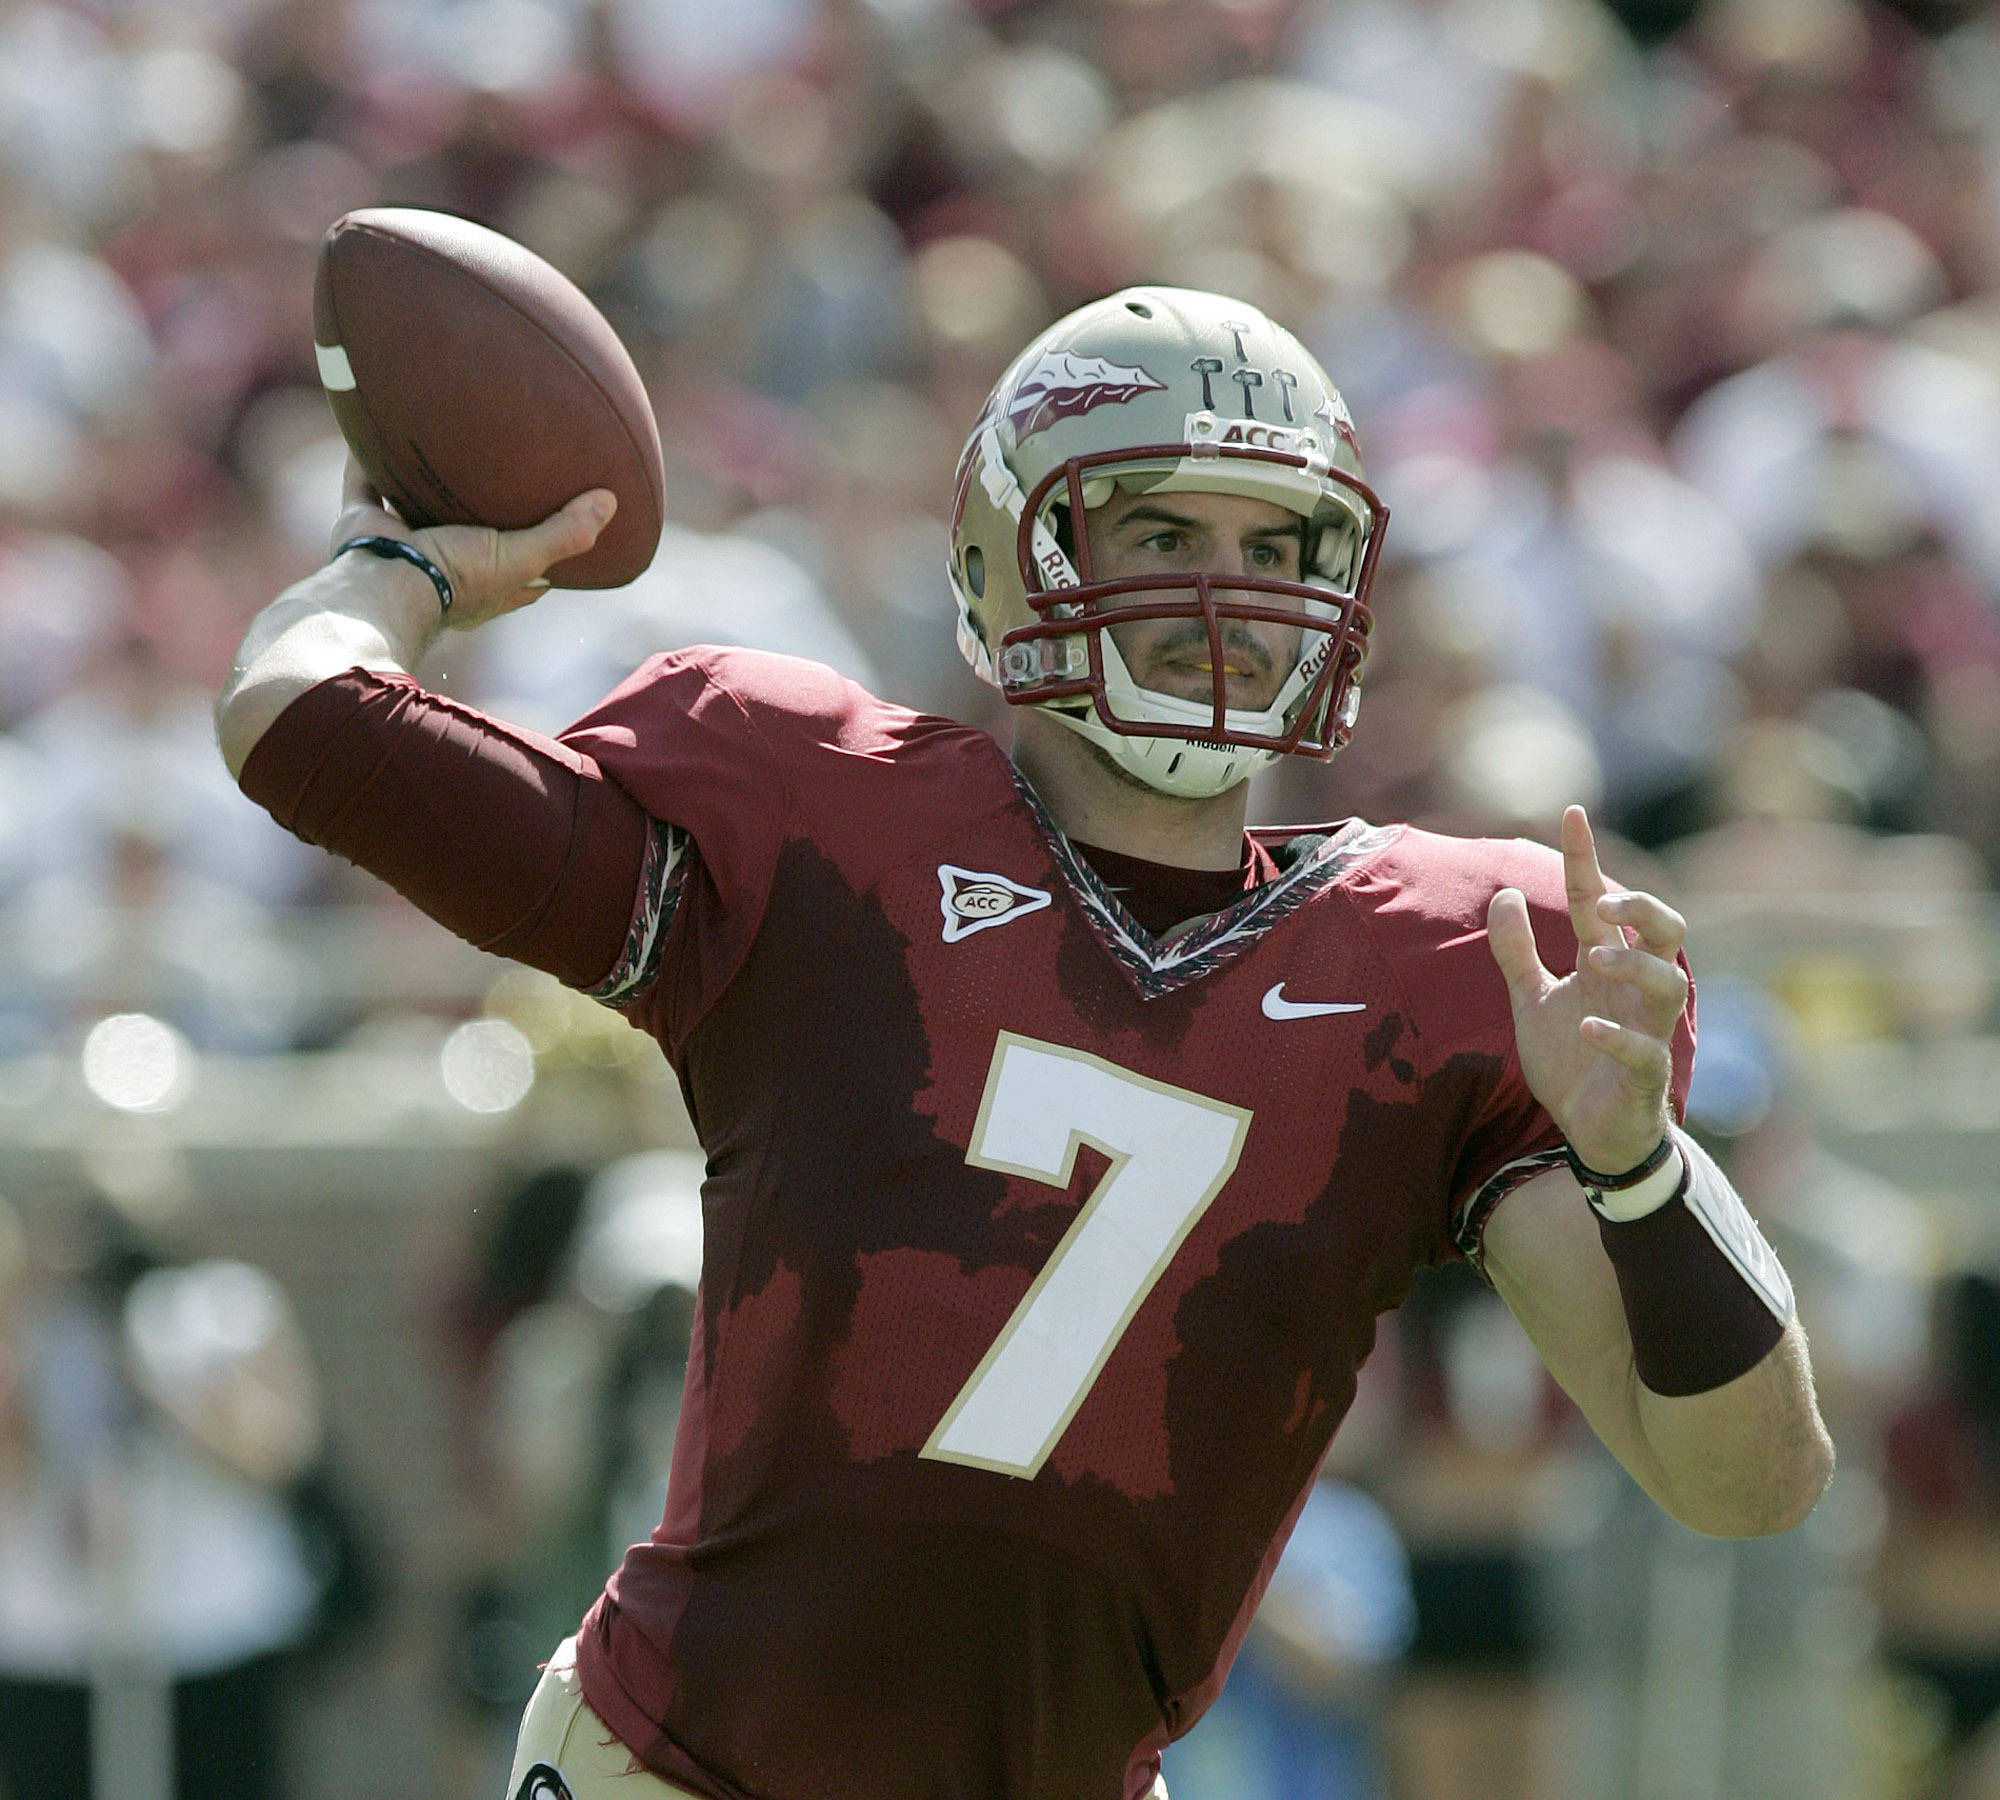 Florida State's Christian Ponder attempts a pass against Wake Forest in the first quarter of an NCAA college football game on Saturday, Sept. 25, 2010, in Tallahassee, Fla. (AP Photo/Steve Cannon)